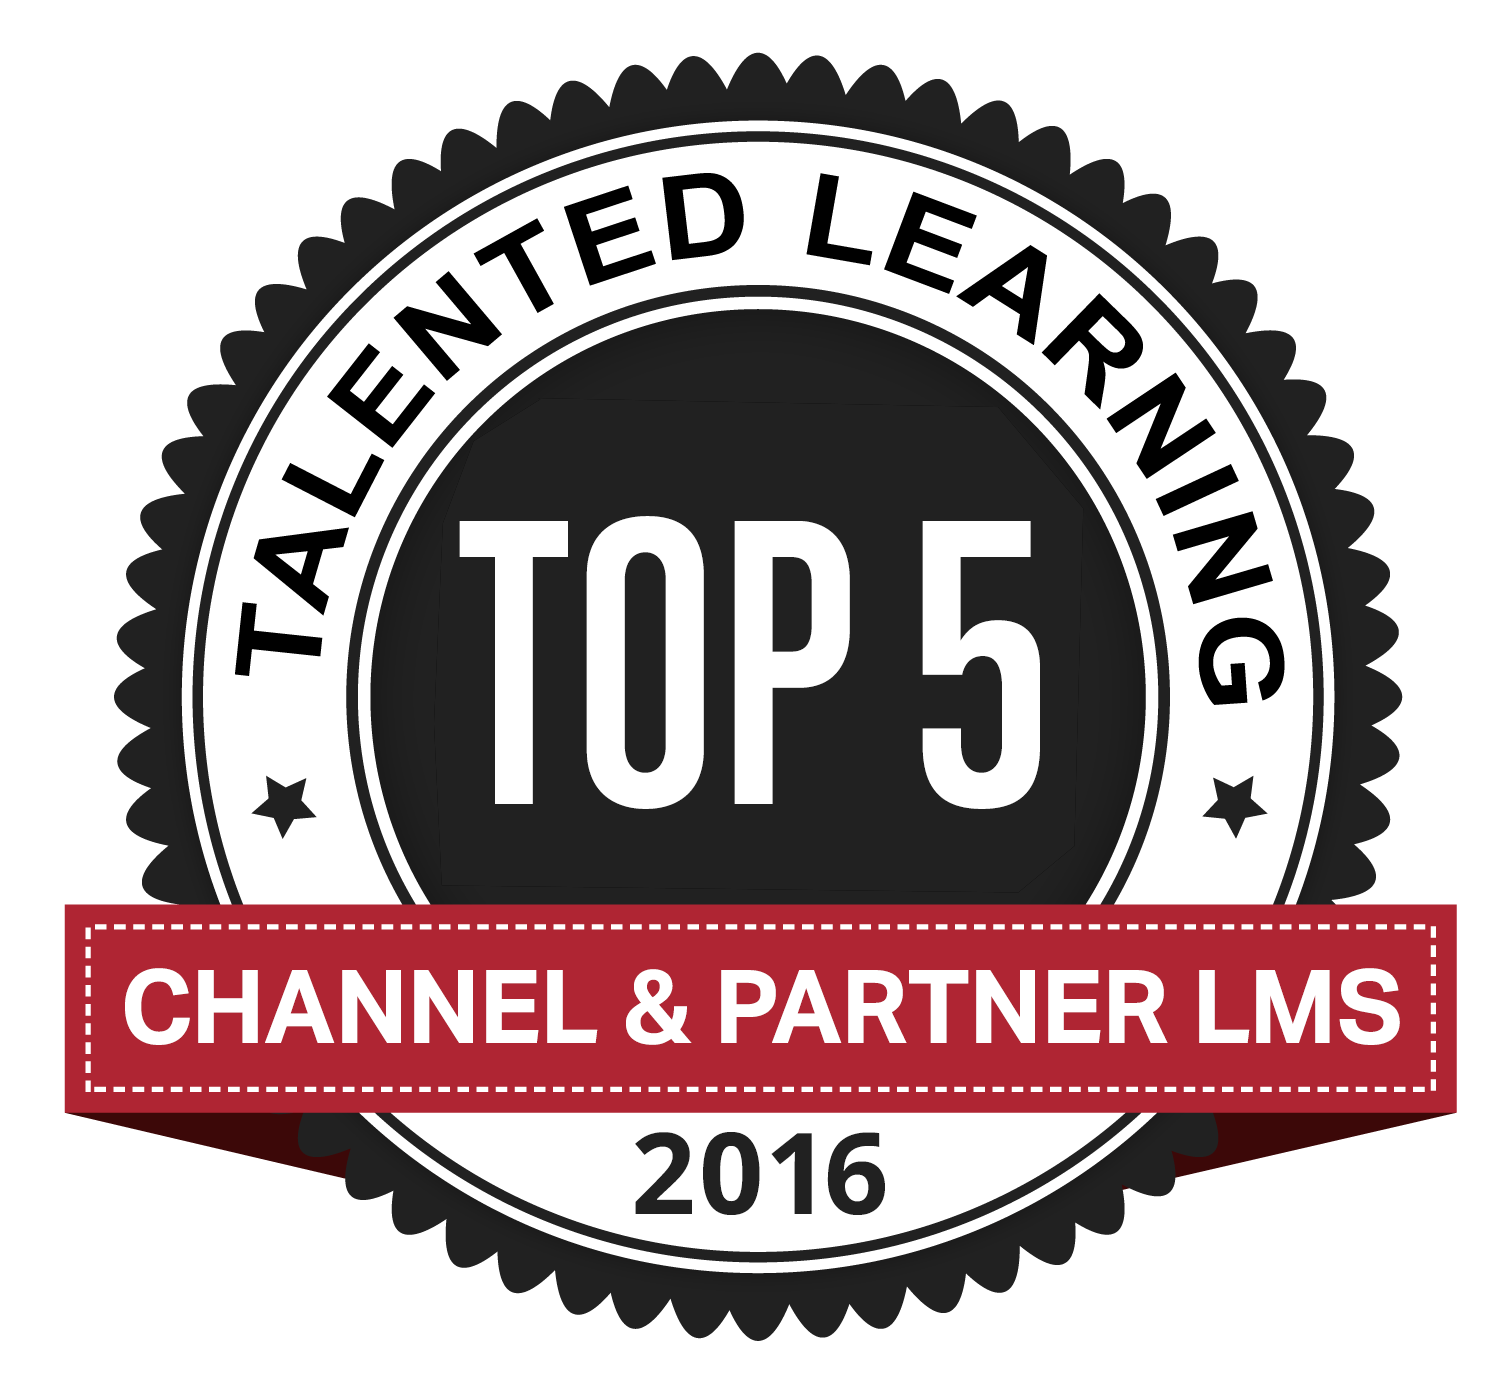 Talented Learning Channel & Partner LMS